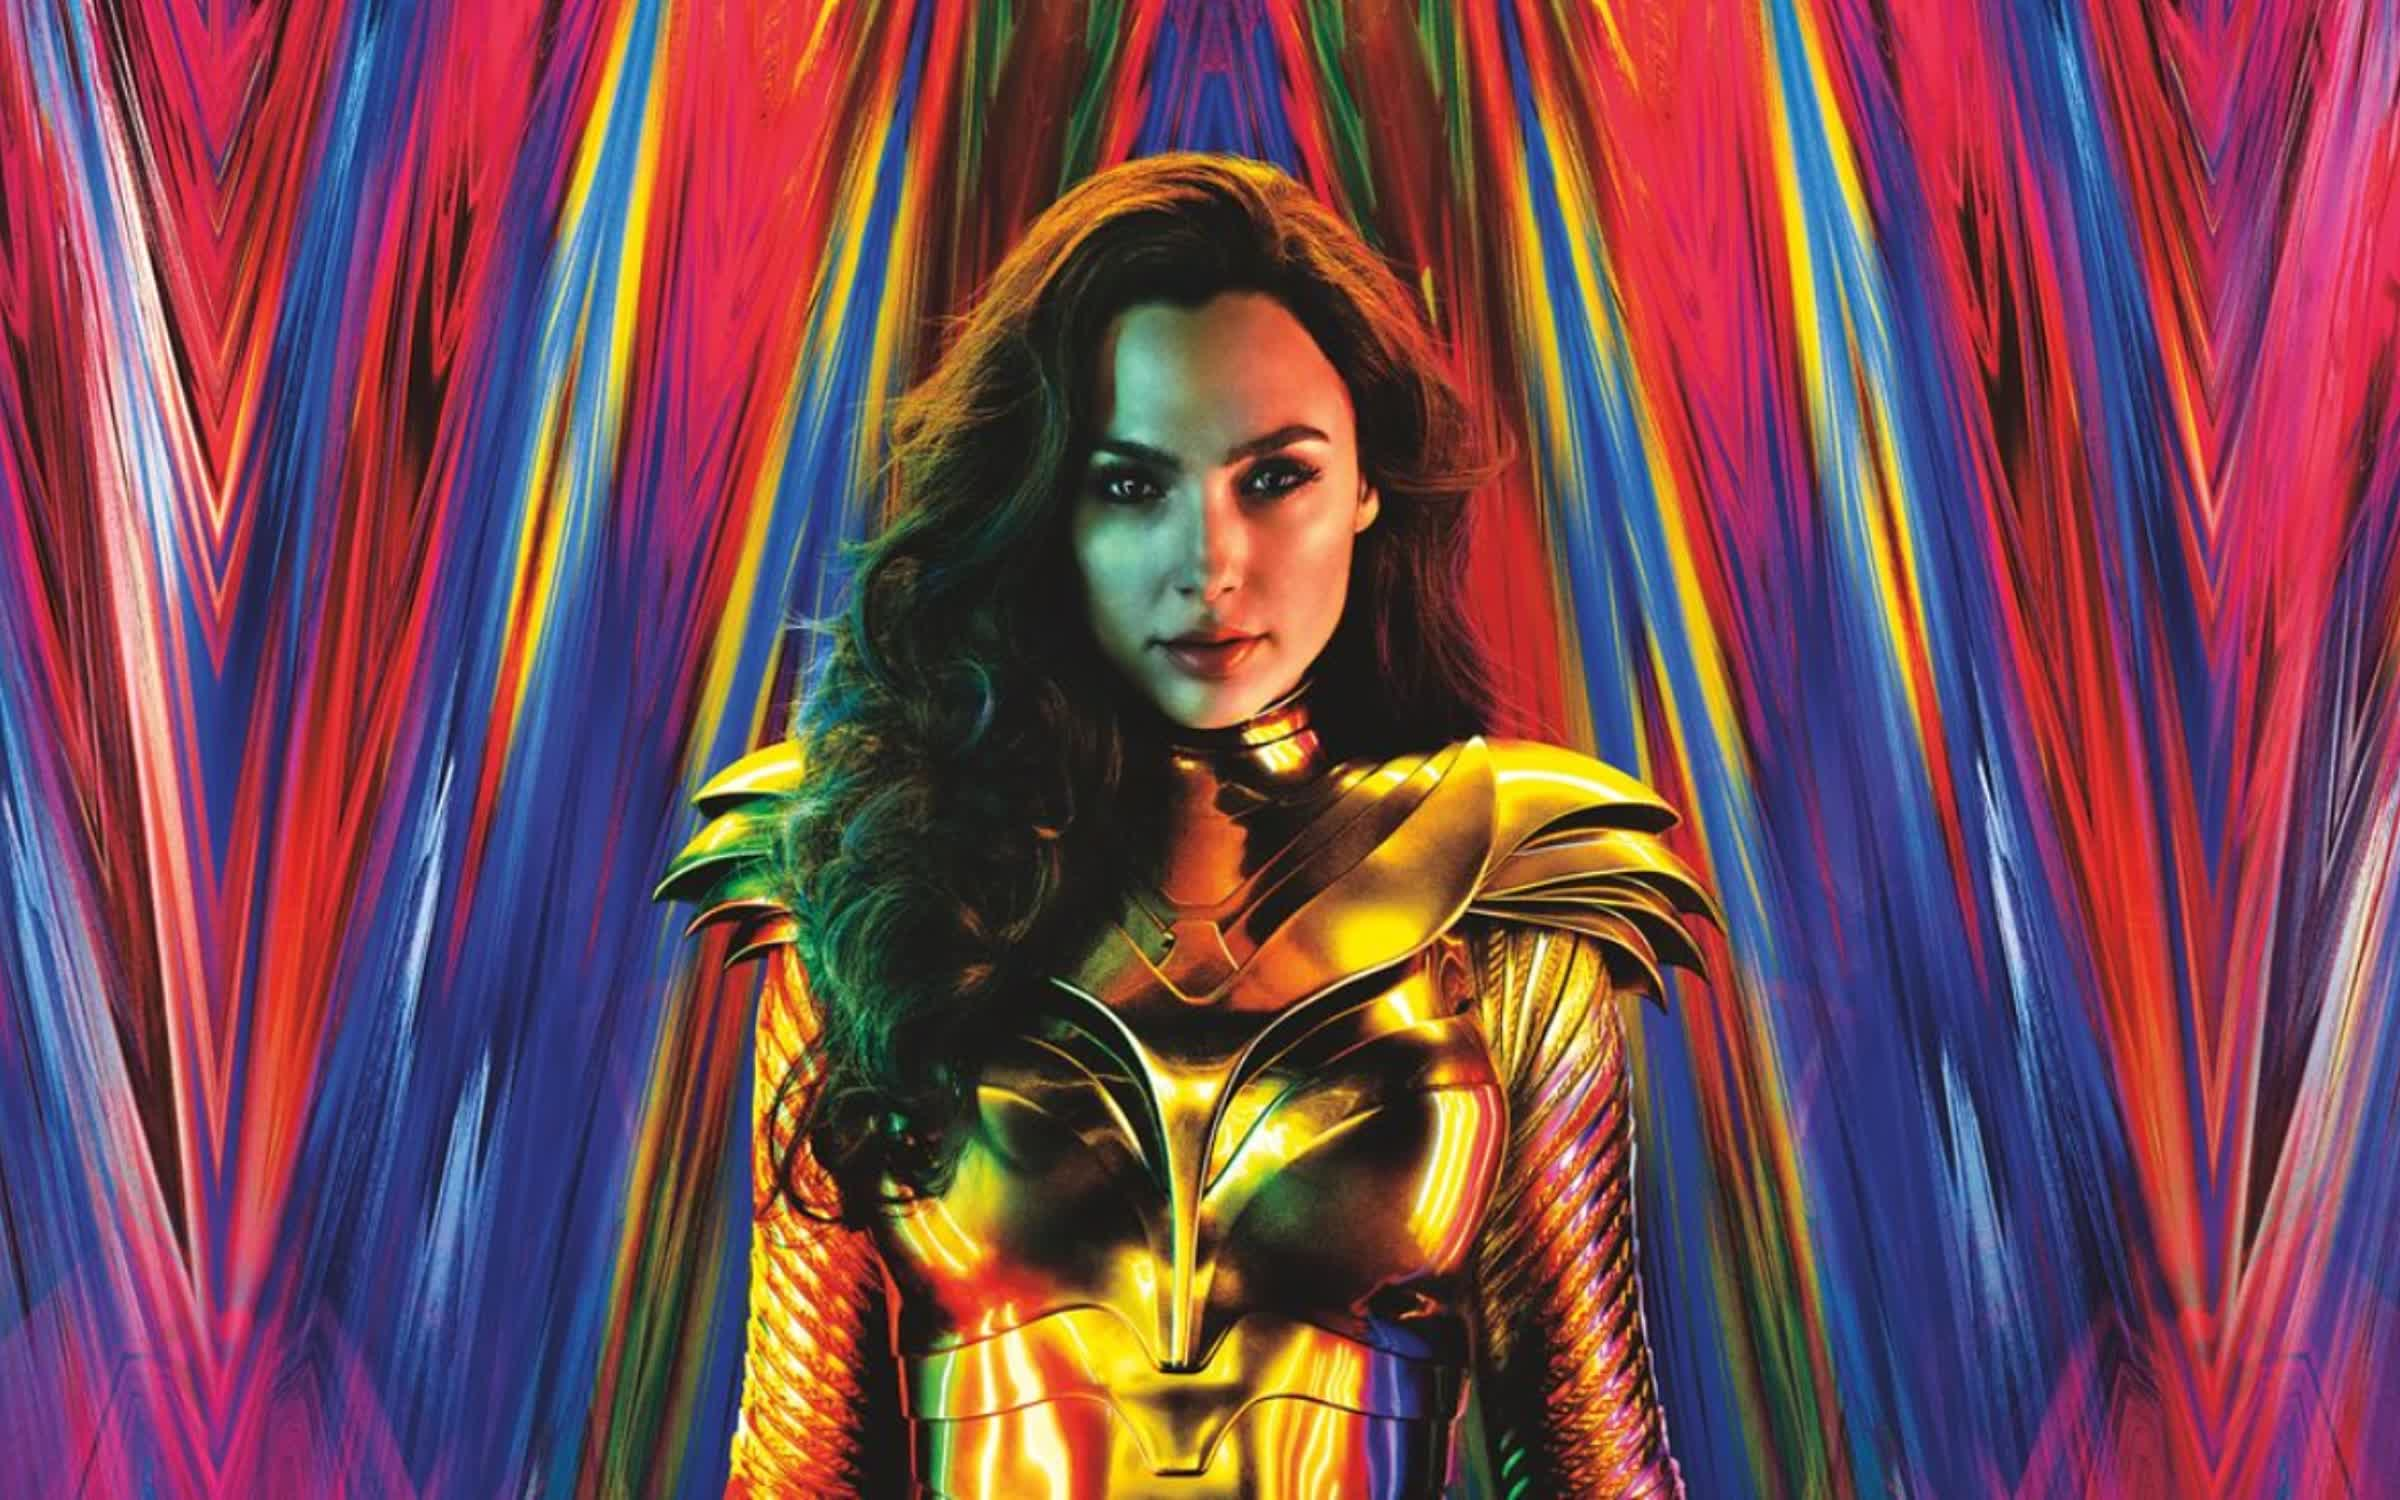 Warner Bros. is fast-tracking a sequel to Wonder Woman 1984 following successful weekend premiere